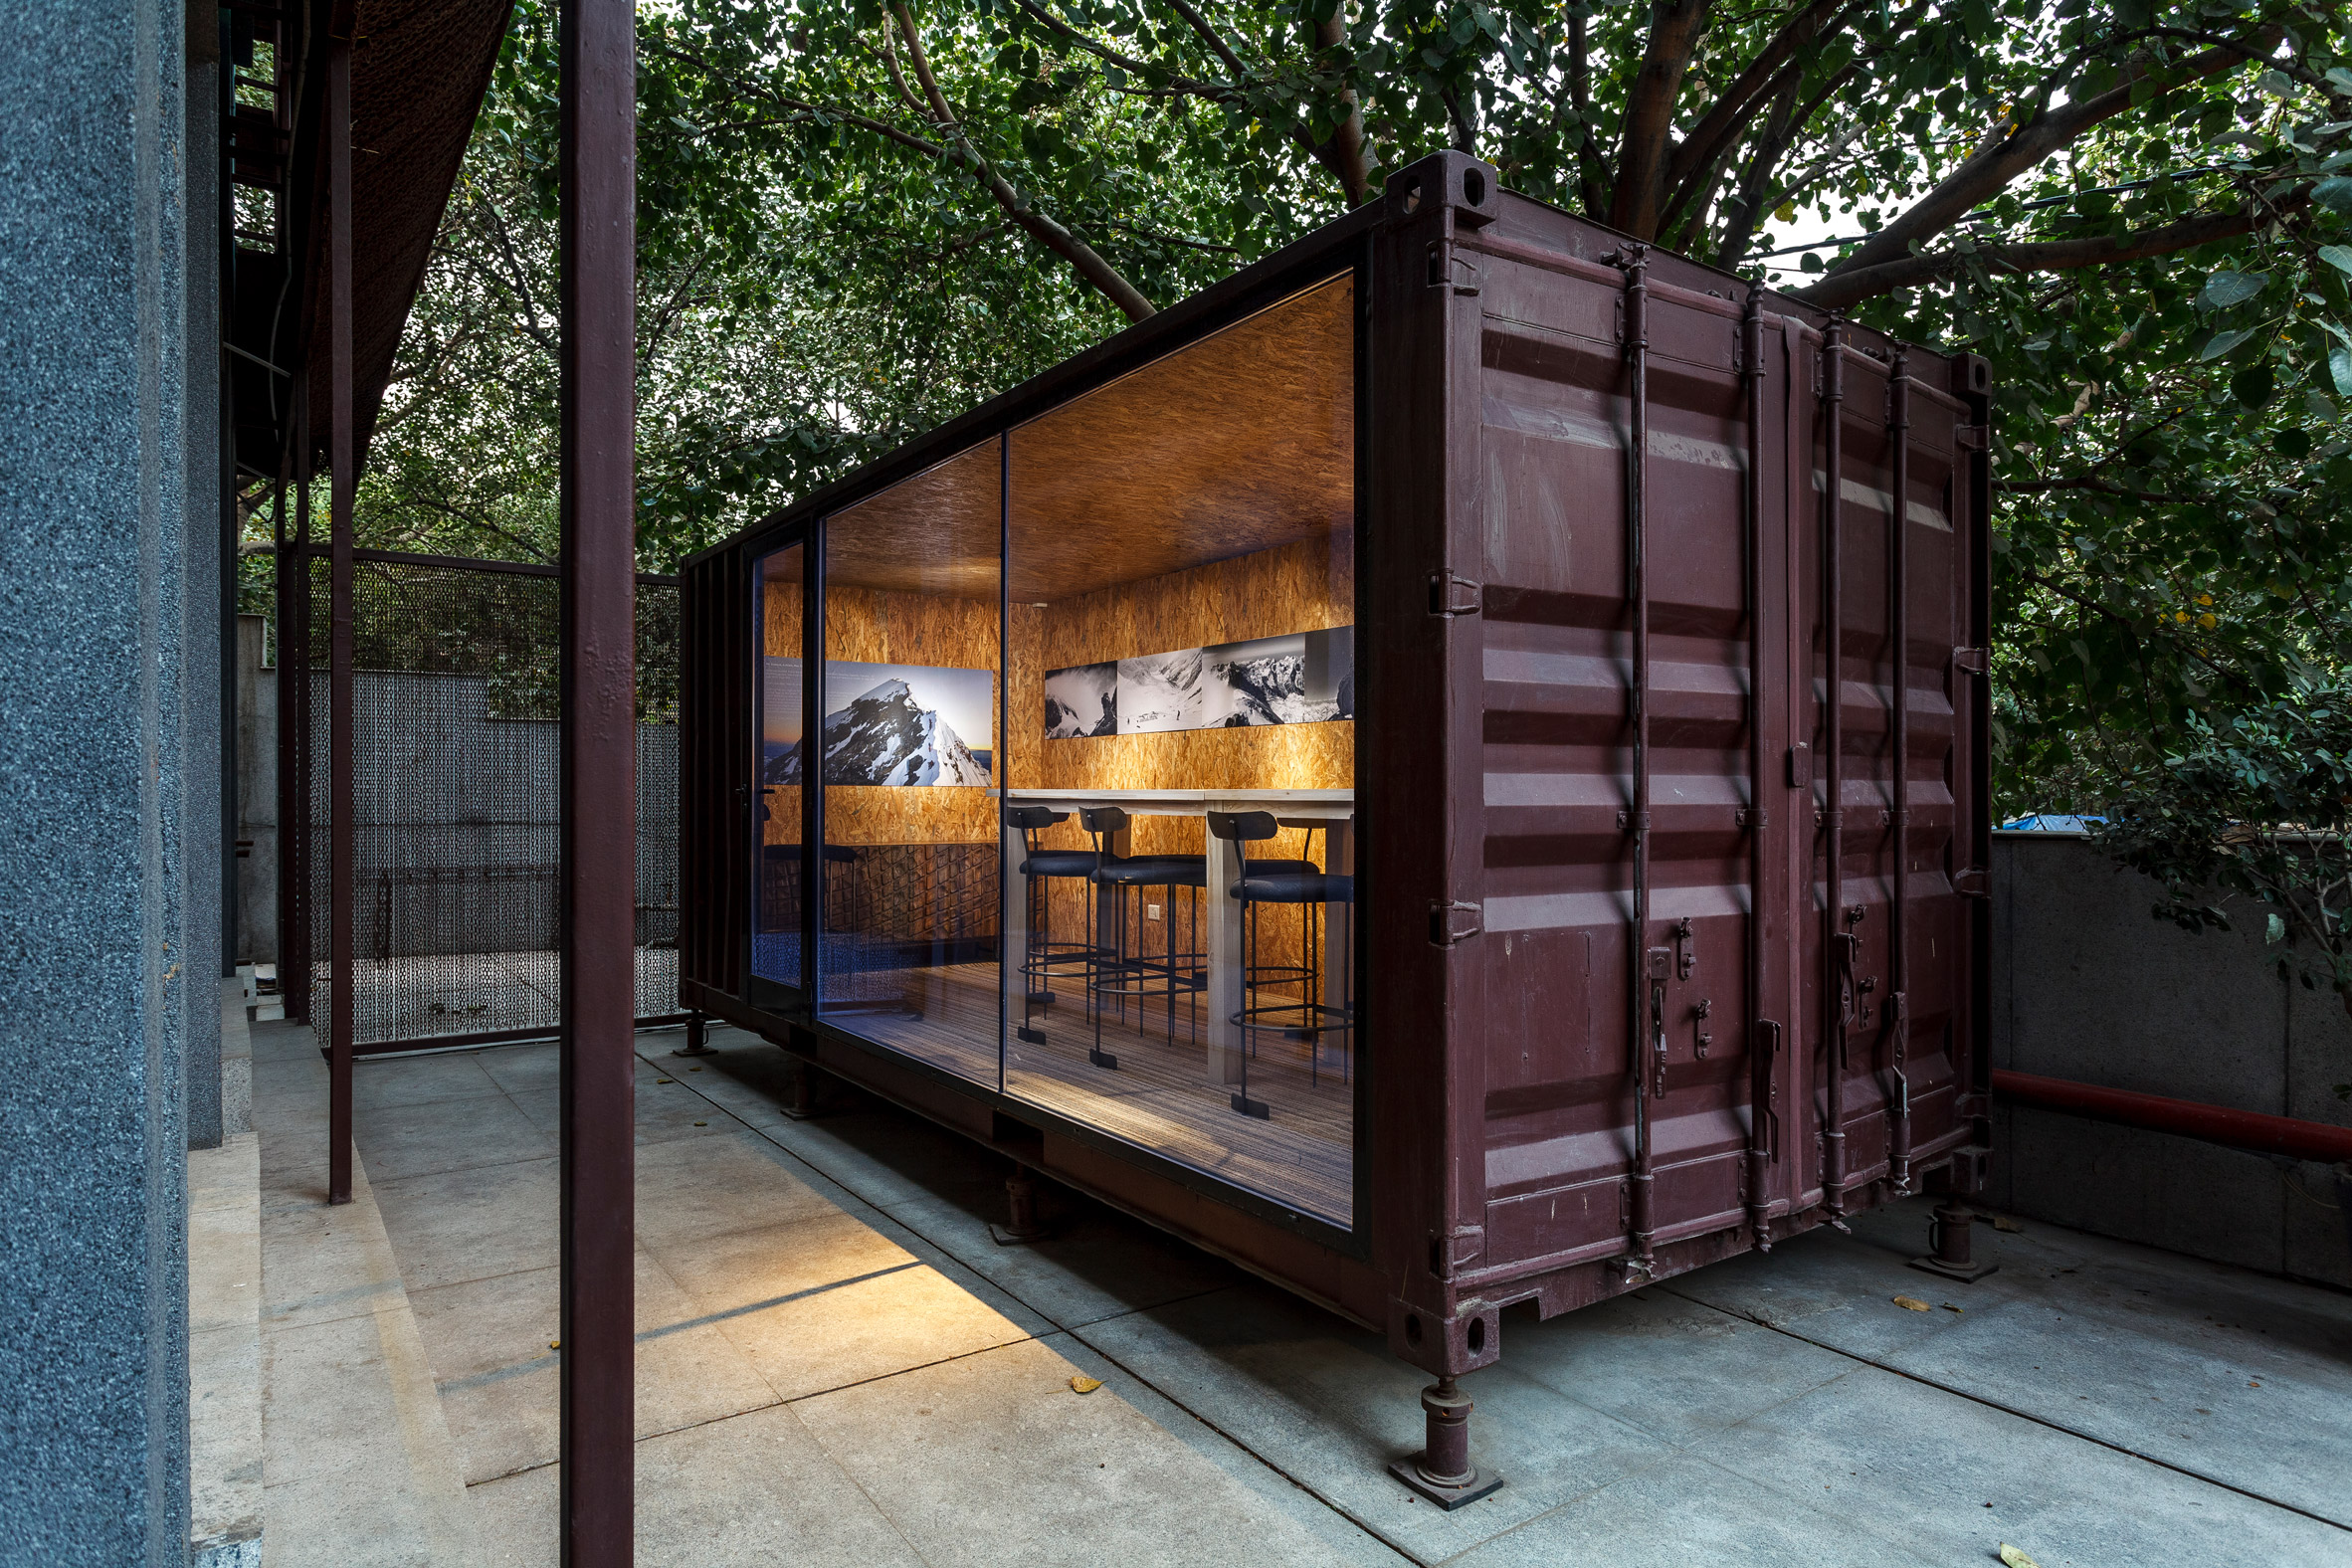 The shipping container has chipboard interiors